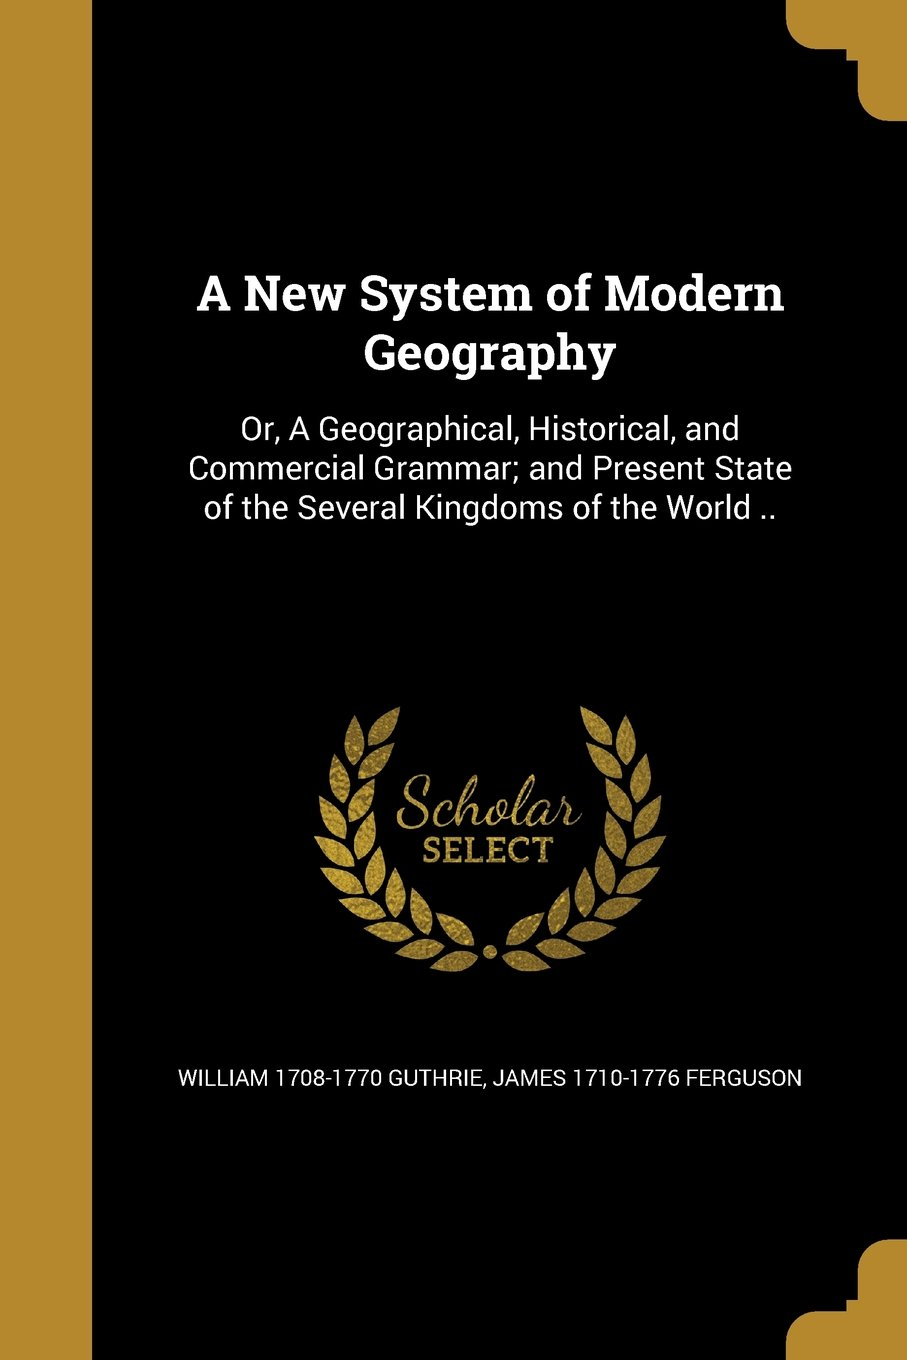 Download A New System of Modern Geography: Or, a Geographical, Historical, and Commercial Grammar; And Present State of the Several Kingdoms of the World .. pdf